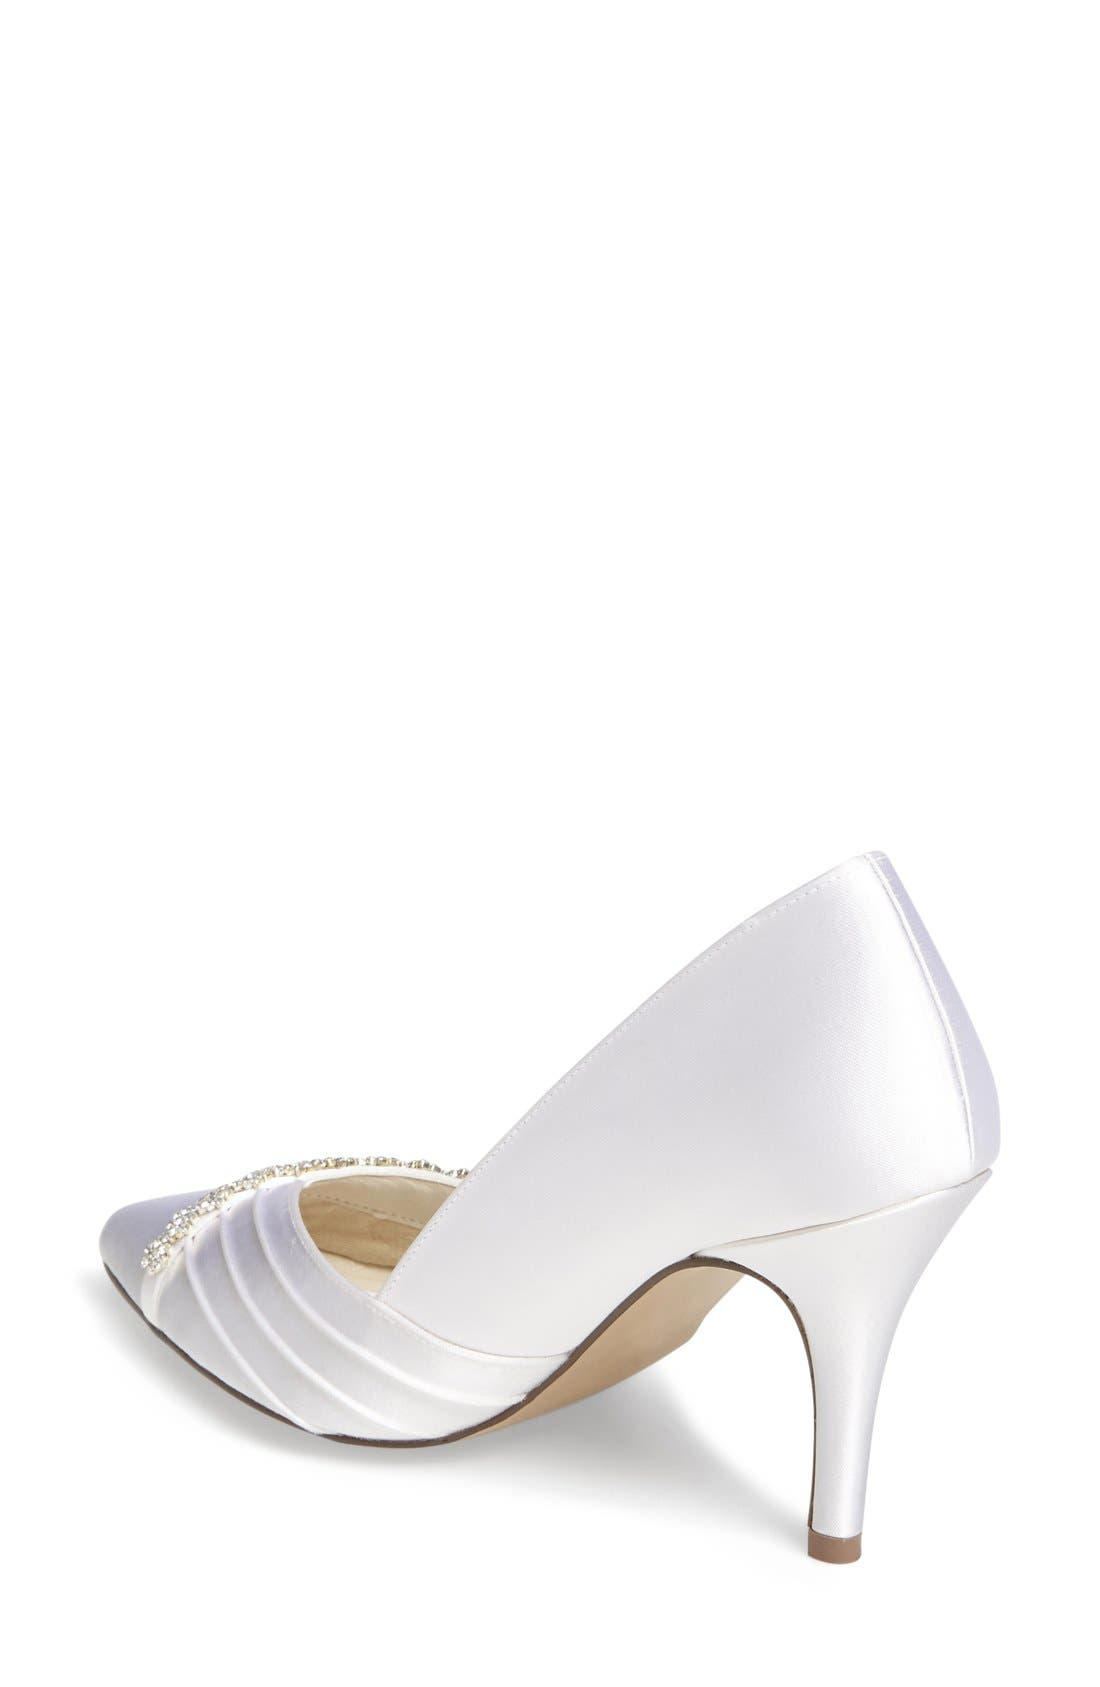 Union Crystal Embellished Pointy Toe Pump,                             Alternate thumbnail 3, color,                             100